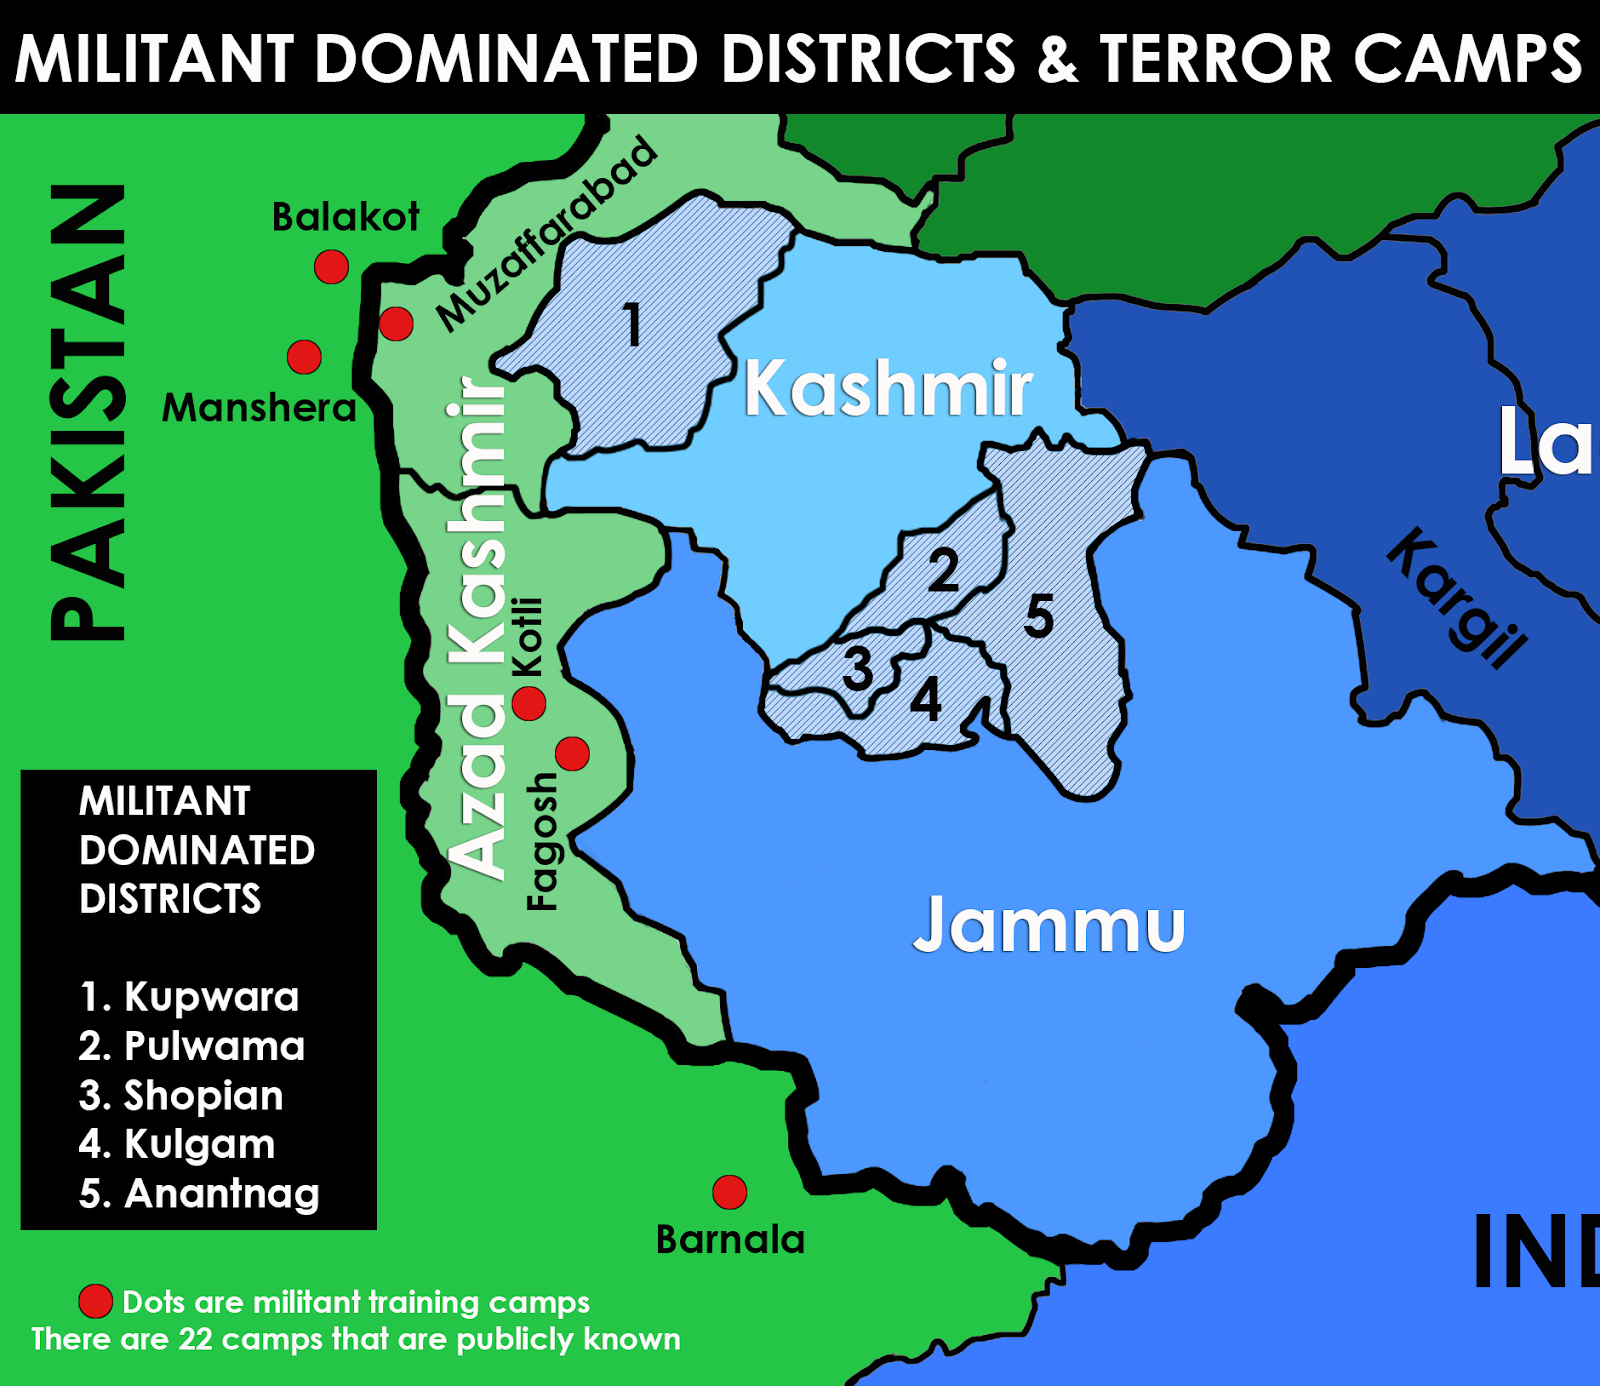 Militant dominated districts in Kashmir and terrorist training camps in Pakistan